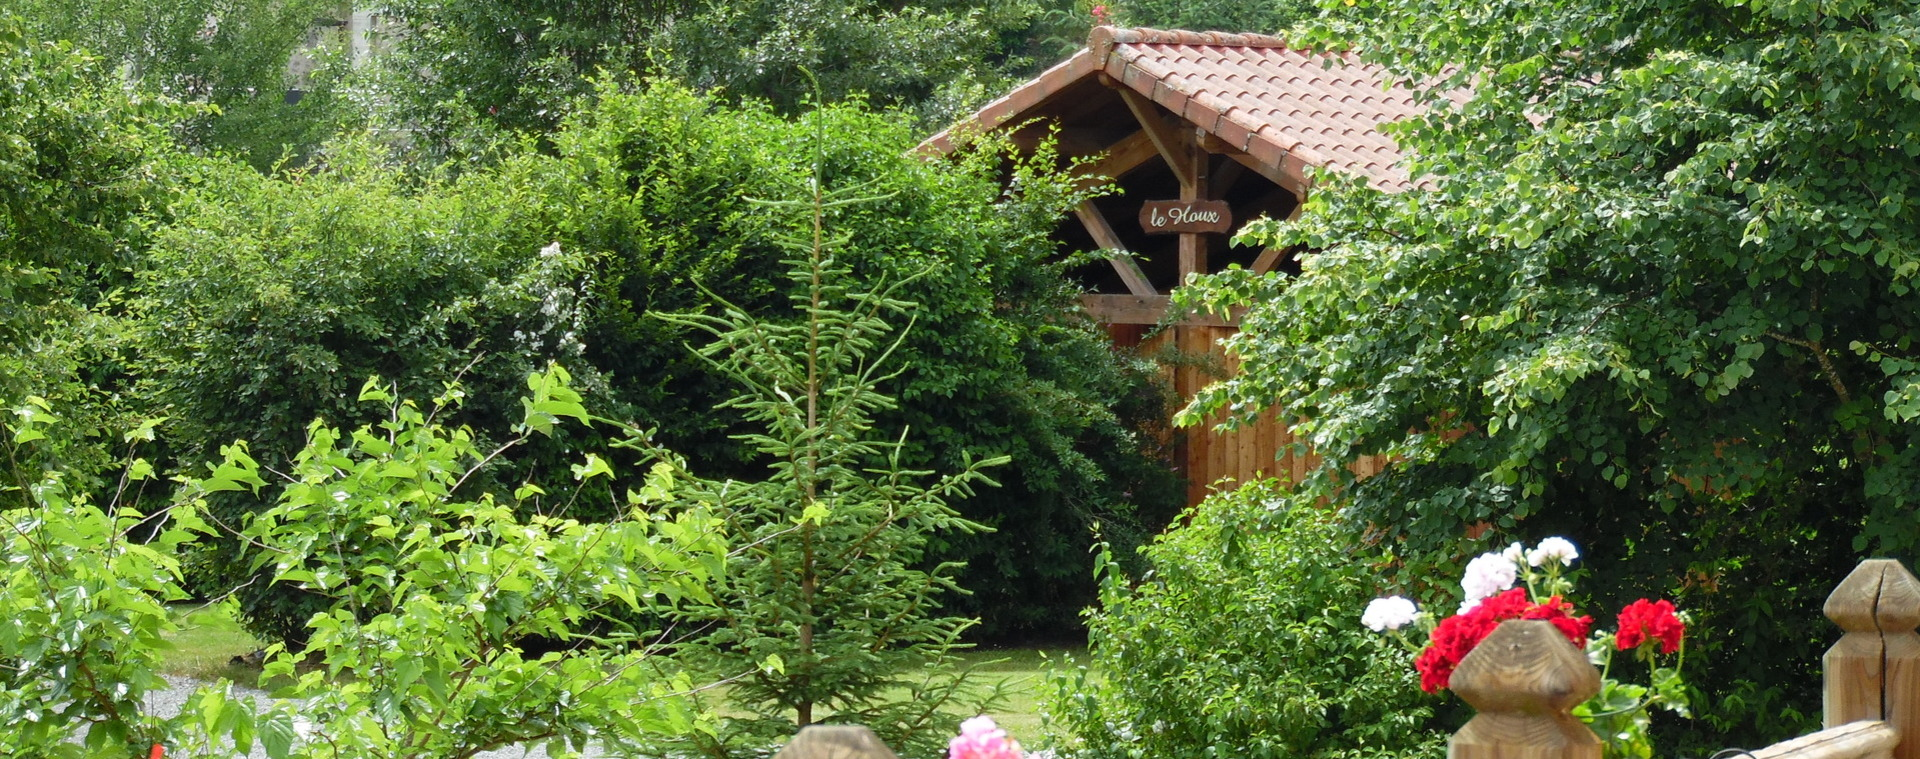 Ferme Viescamp Gites Chalets Pers Cantal